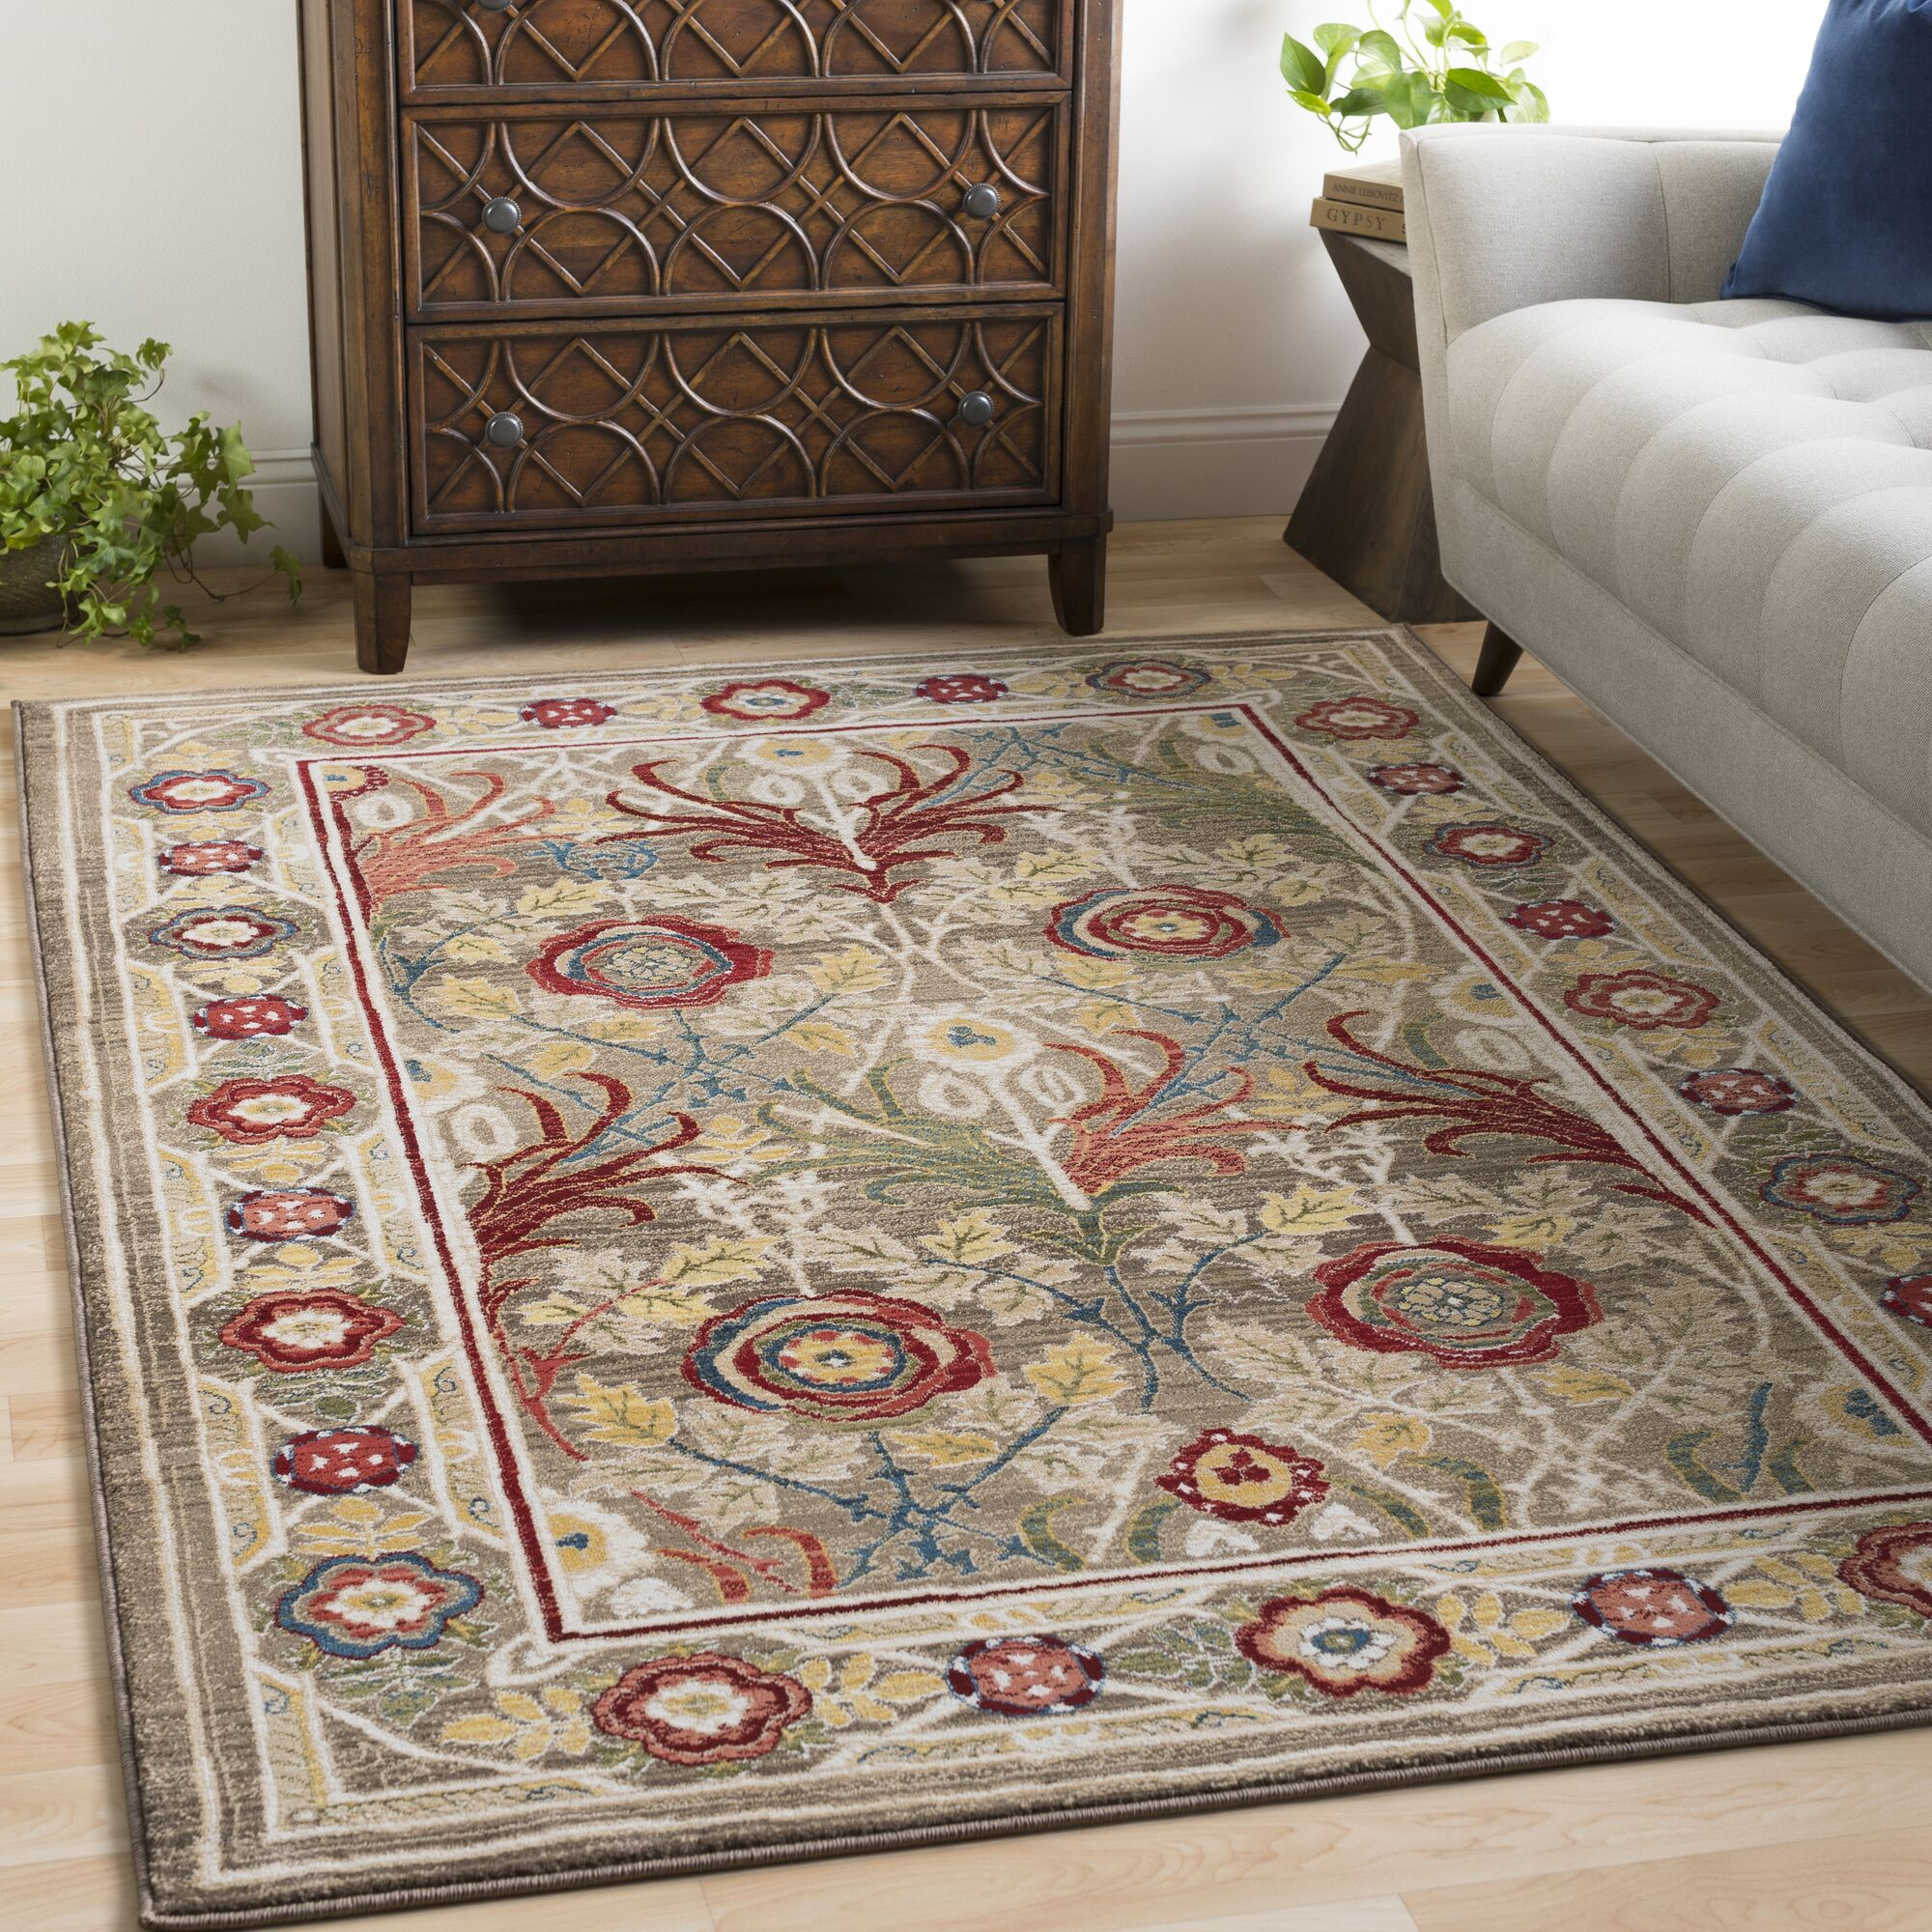 Arbouet Floral Brown/Cream Area Rug Rug Size: Rectangle 5'1